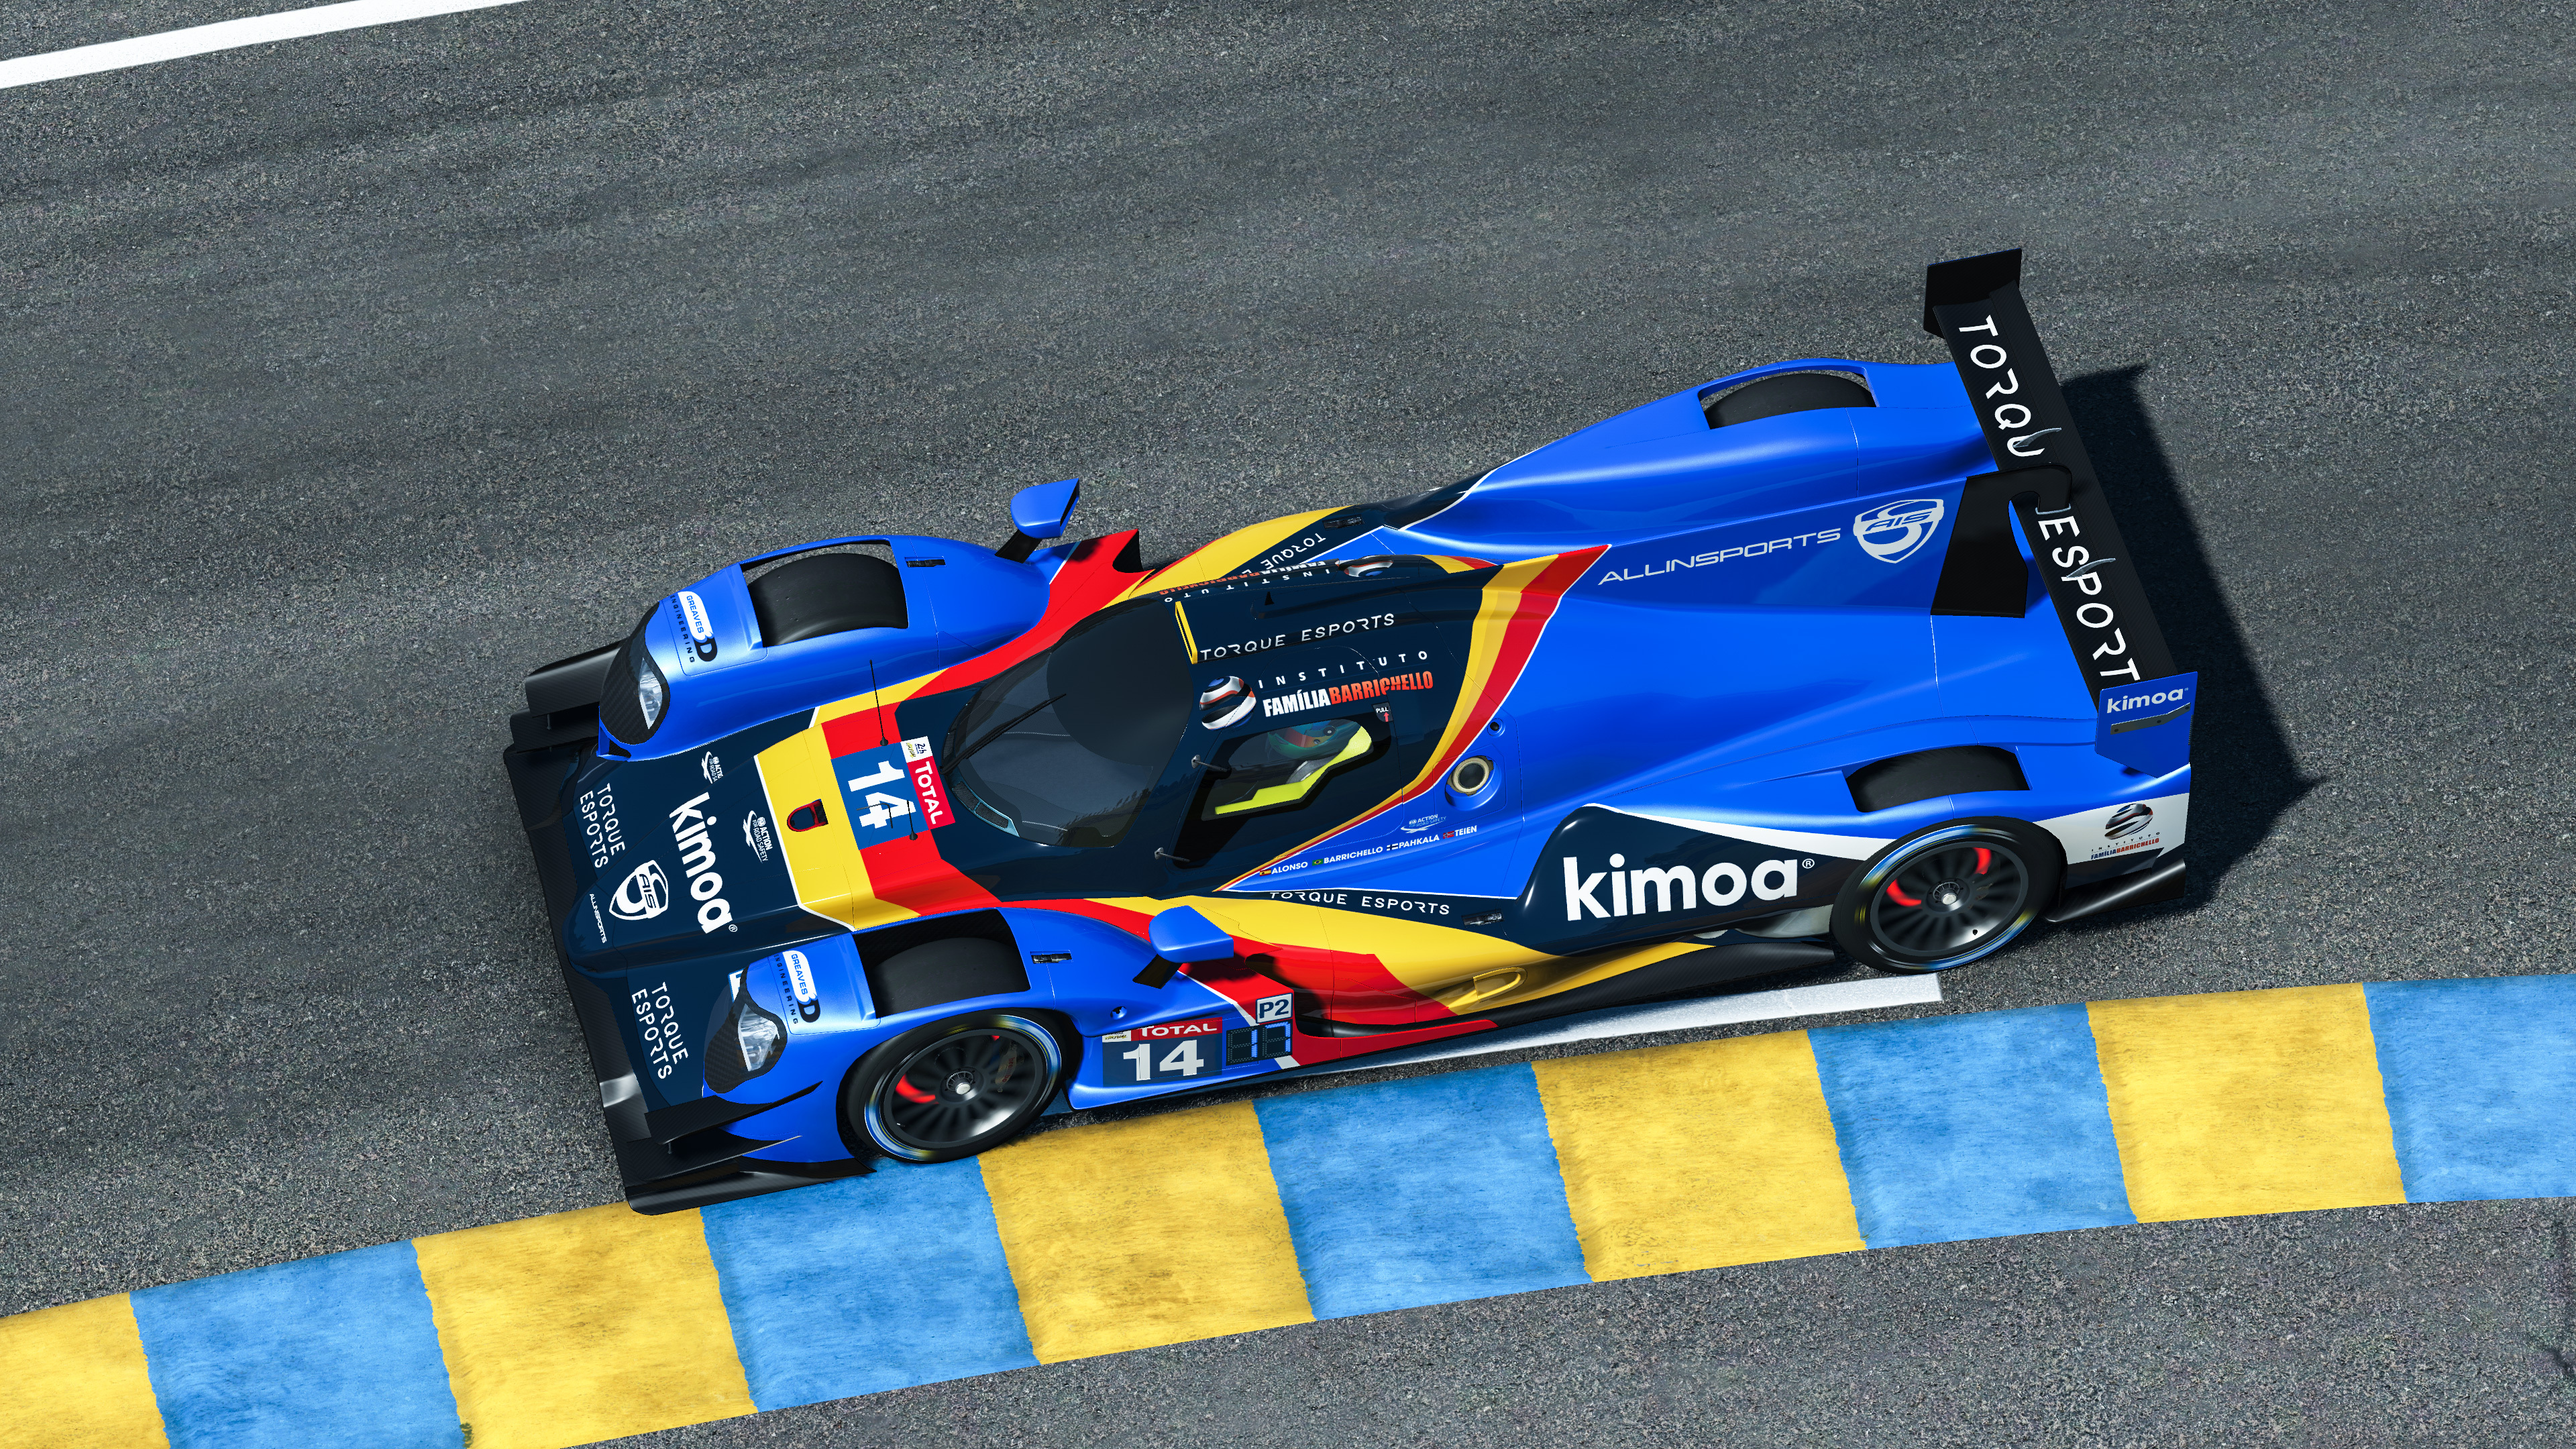 rFactor boss responds to Alonso and Verstappen issues at Virtual Le Mans